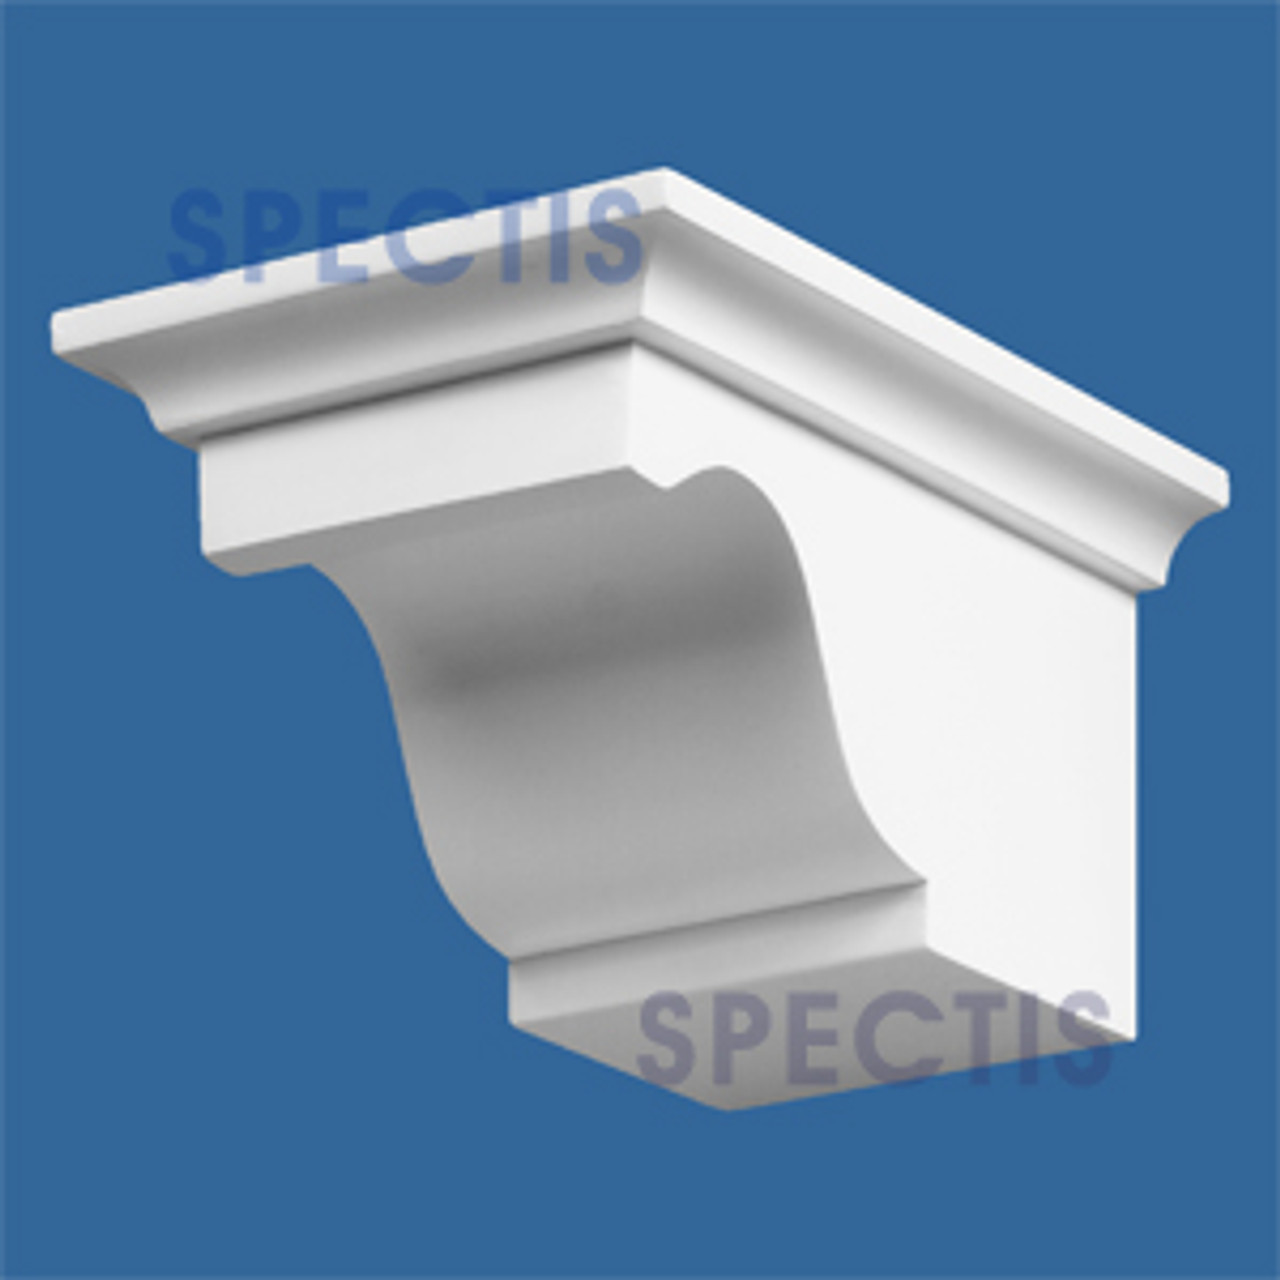 """BL2444R-8/12 Spectis Eave Block or Bracket 5""""W x 4""""H x 8"""" Projection"""